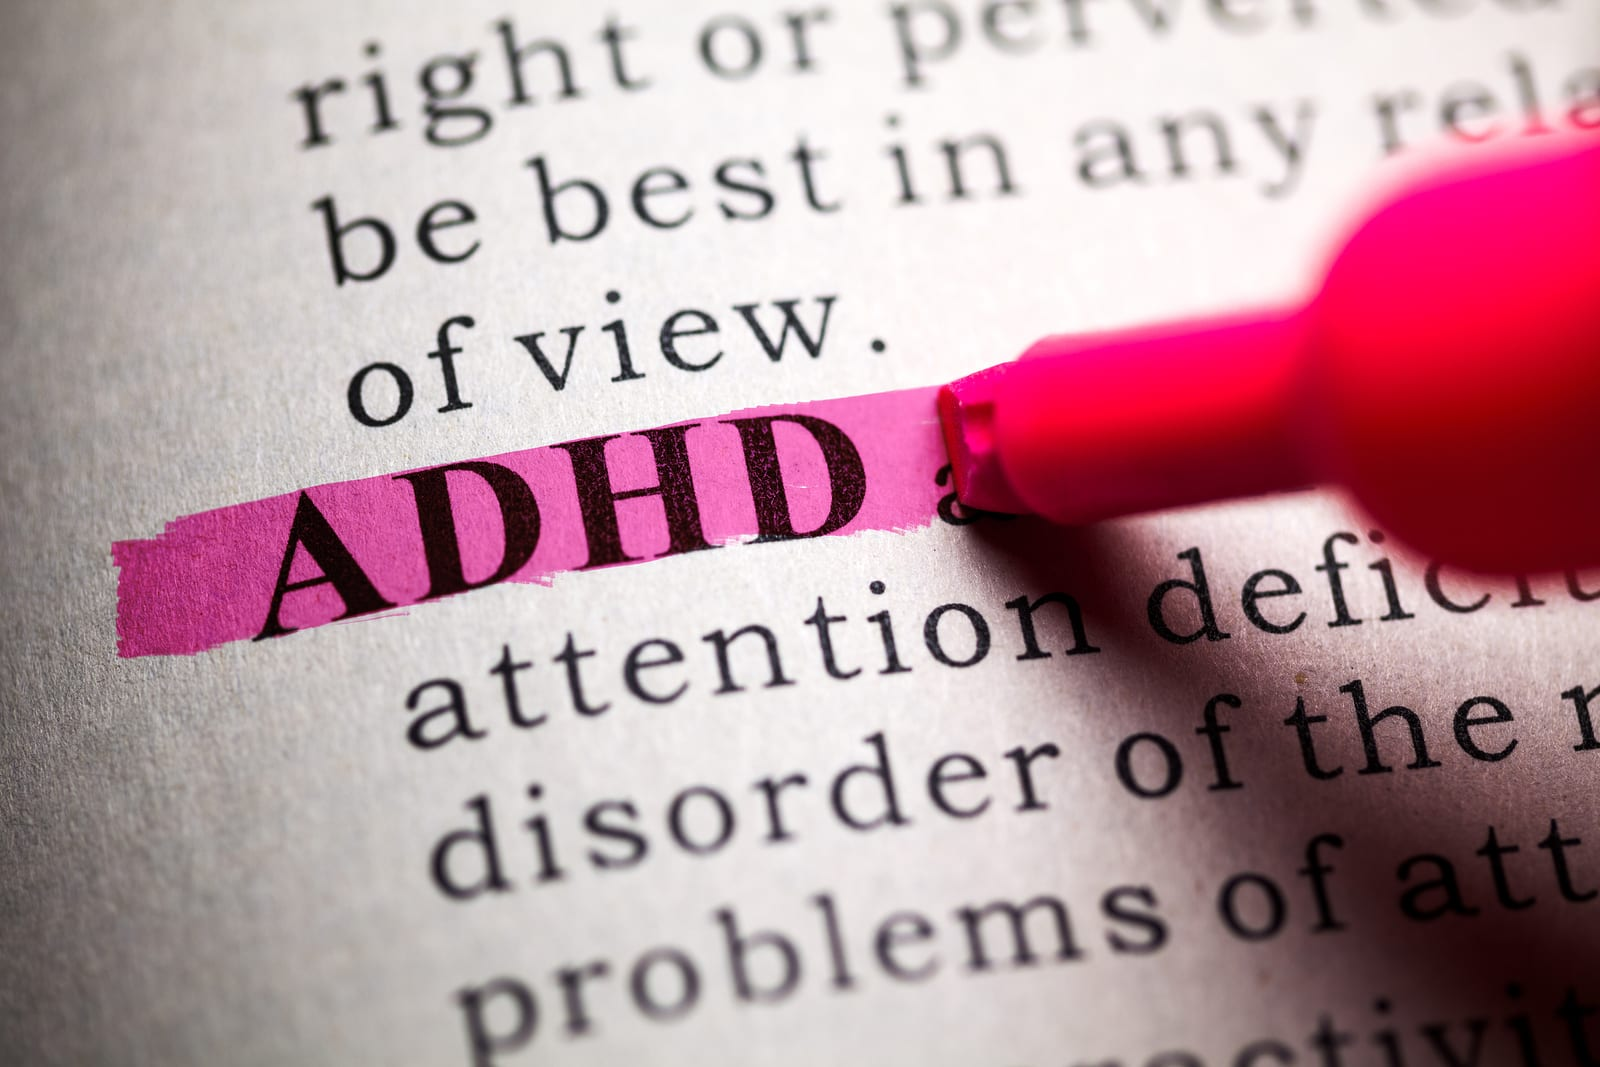 Dictionary, definition of the word ADHD.